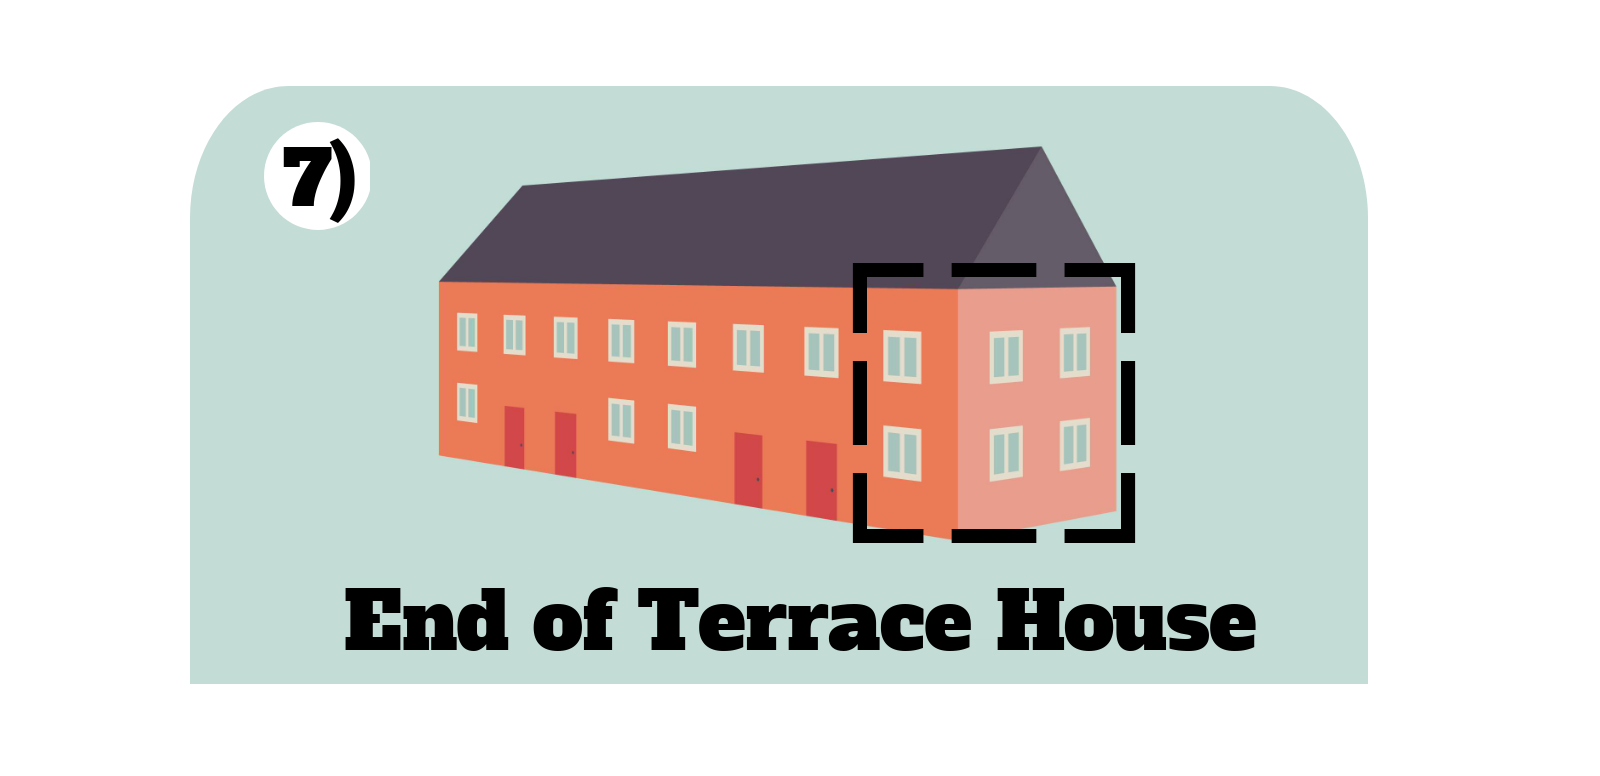 End of terrace property type